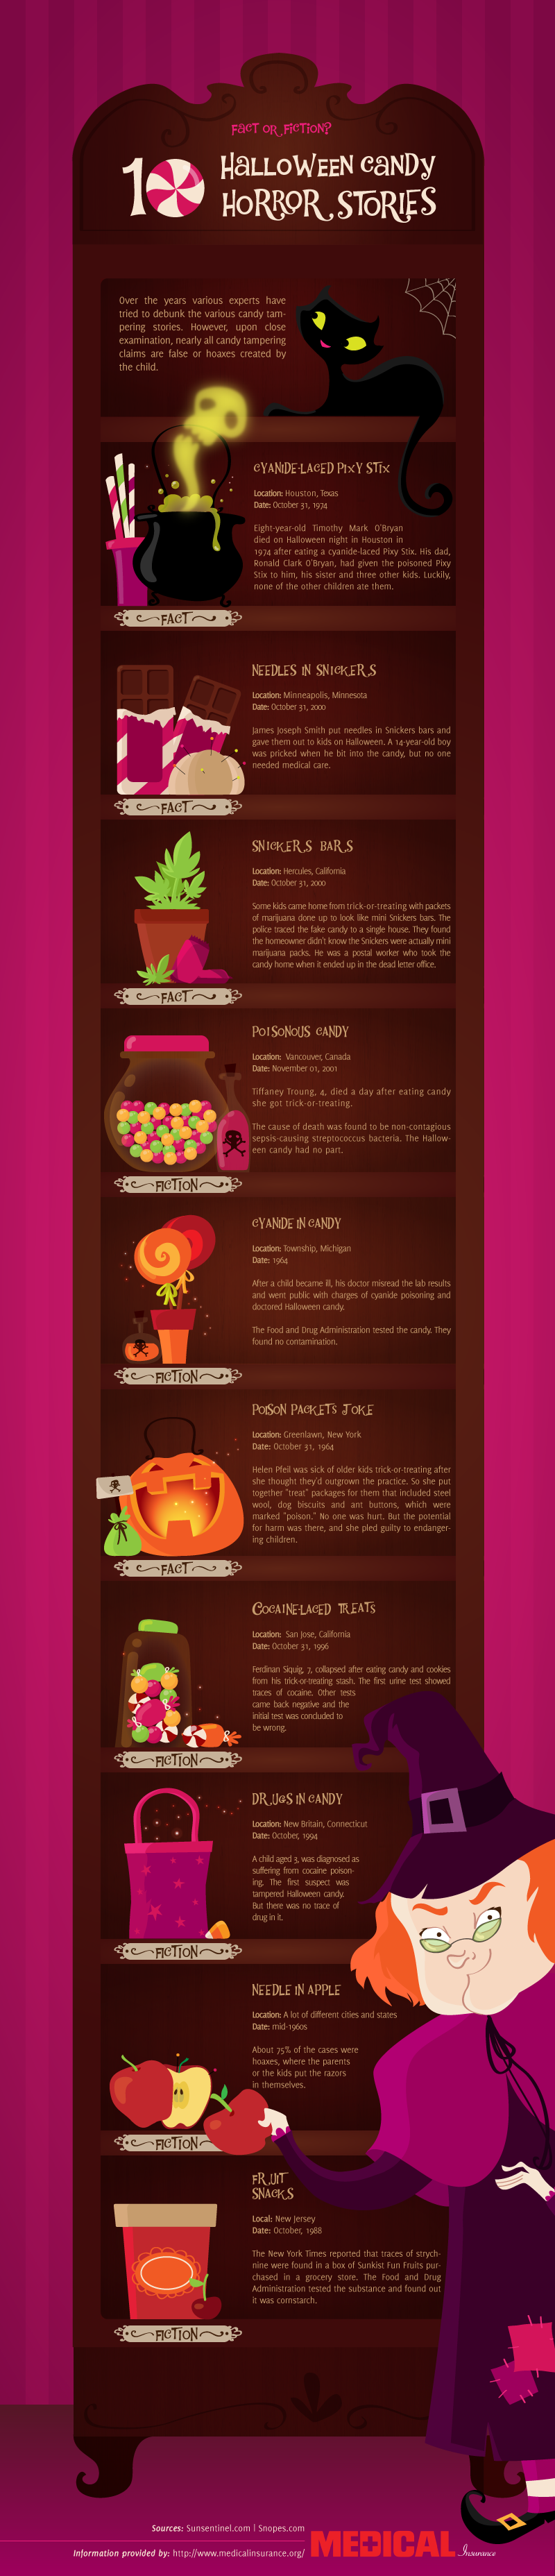 Halloween Candy Tampering Myths and Facts